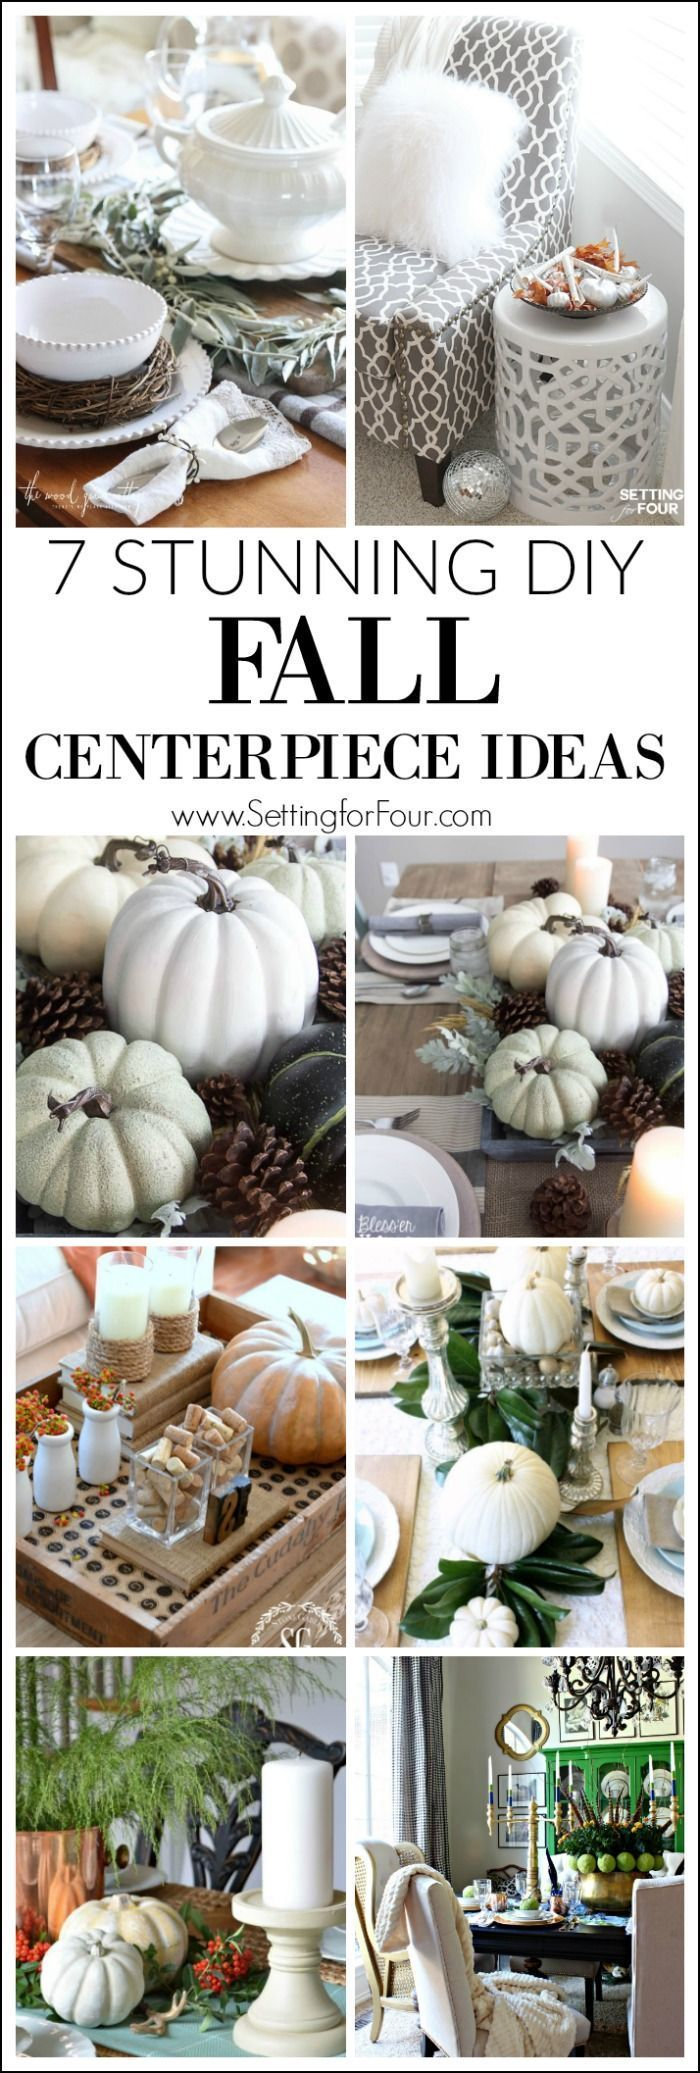 7 Stunning Fall Centerpiece Ideas